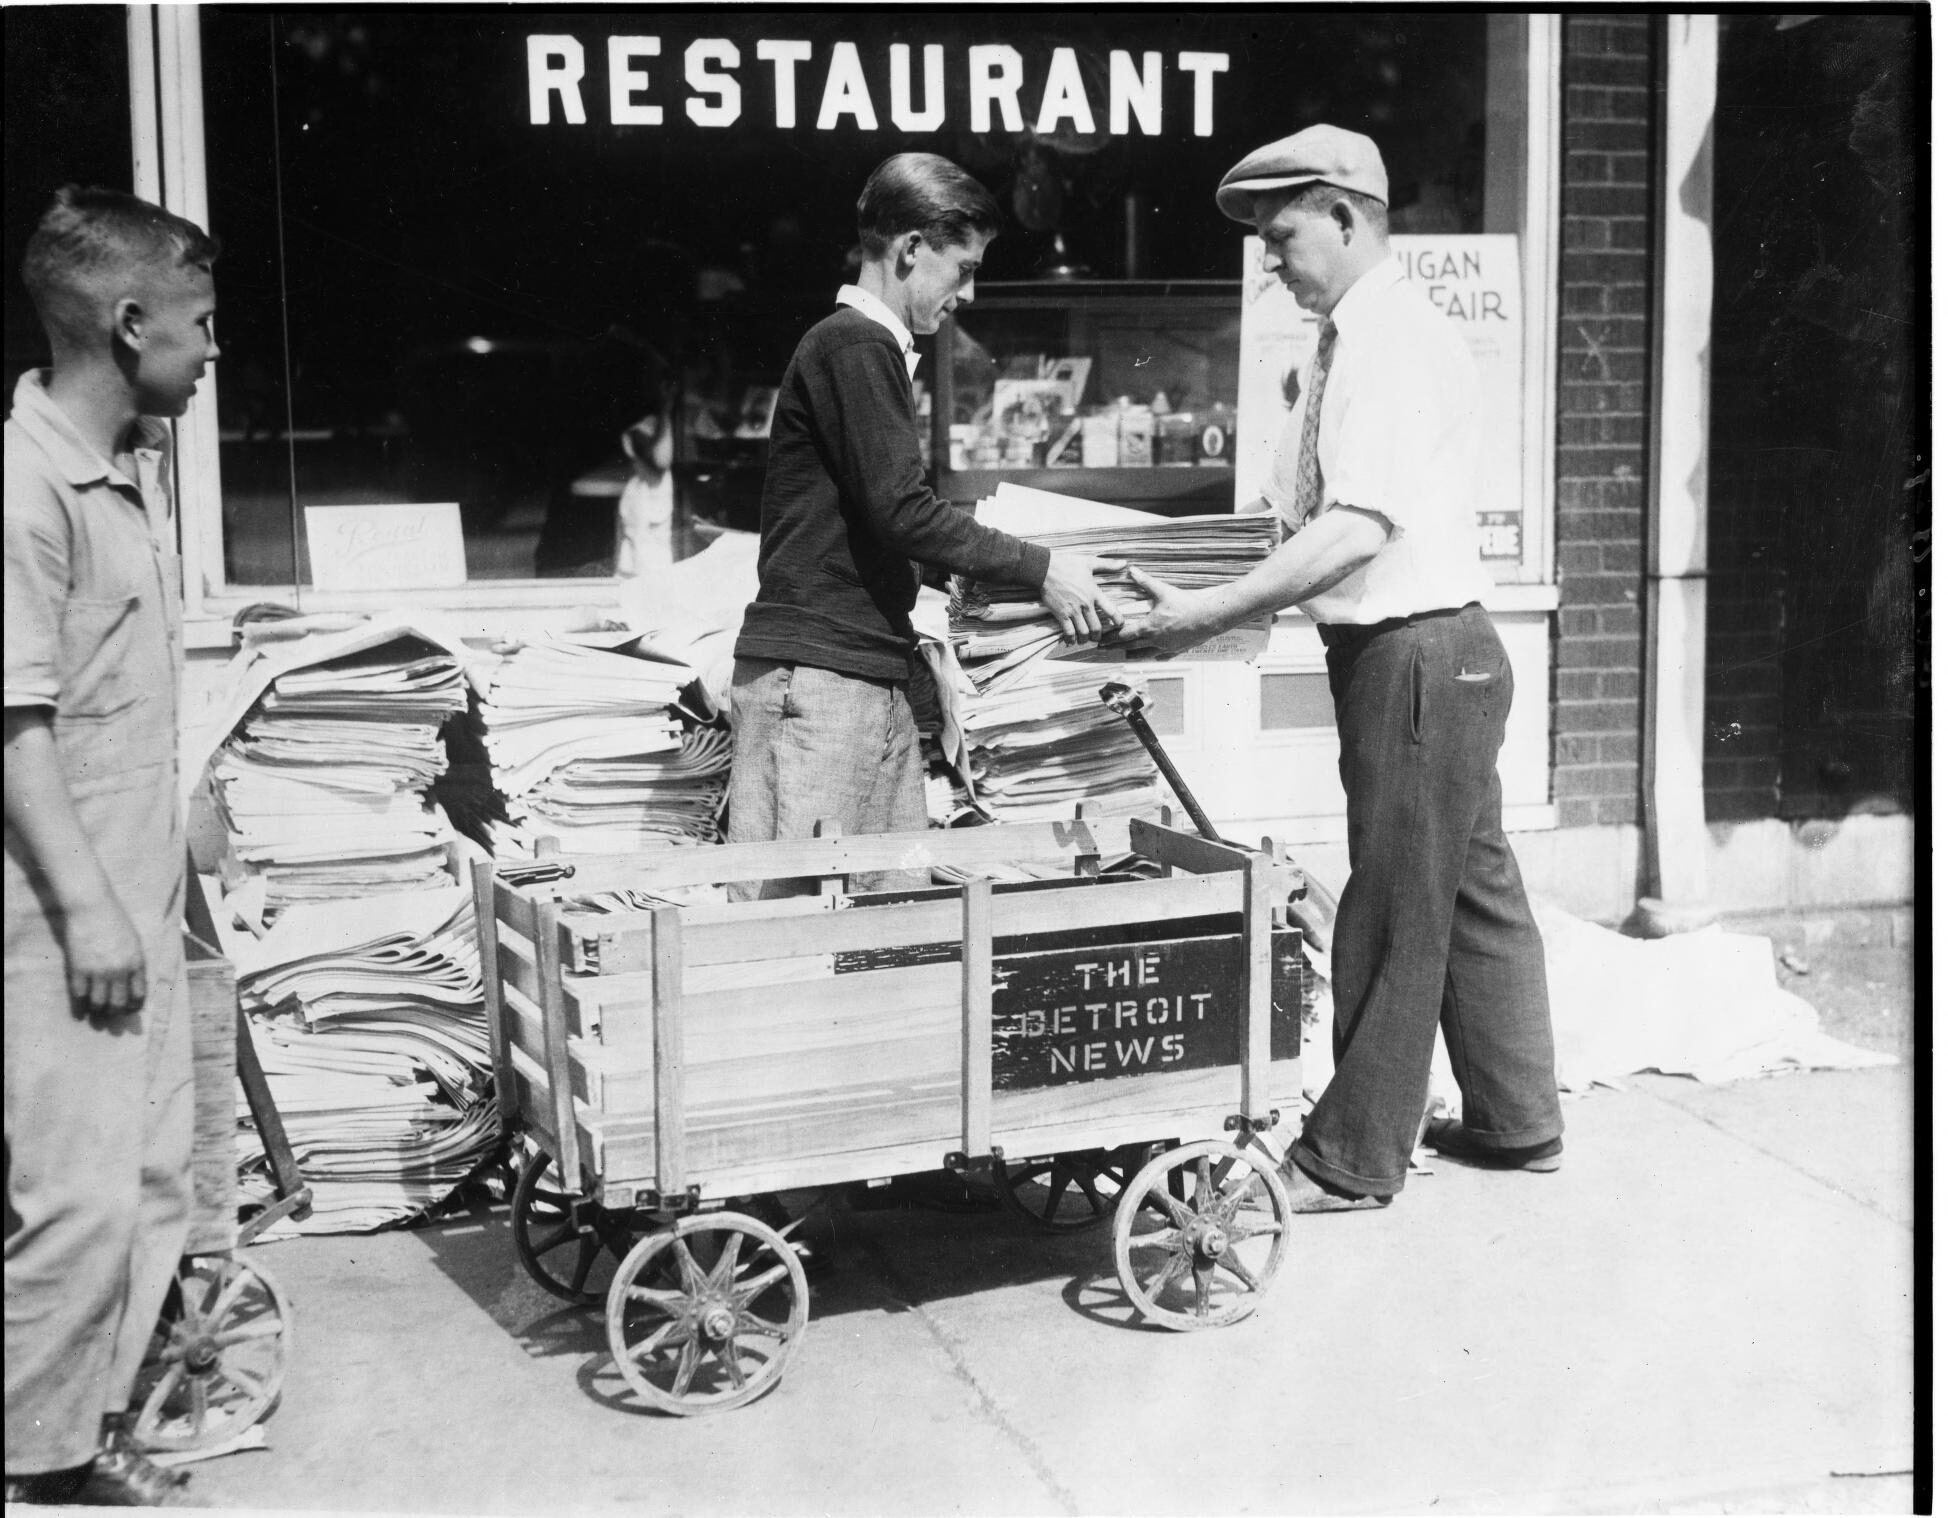 Newspaper carriers with wagon of Detroit News issues.